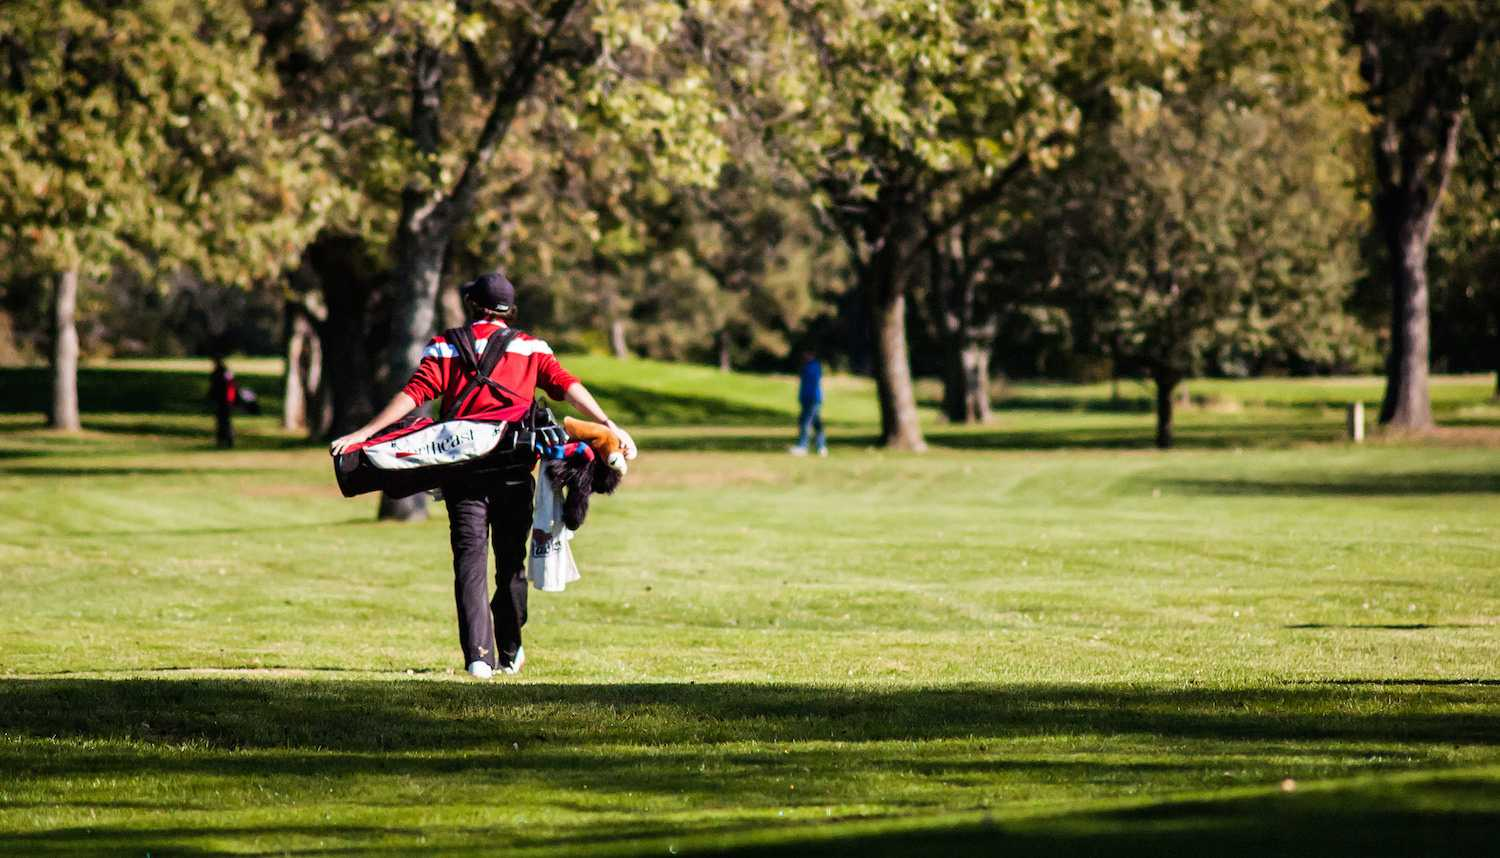 Hawks place fourth at Region XI Tournament; Schaefer qualifies for nationals